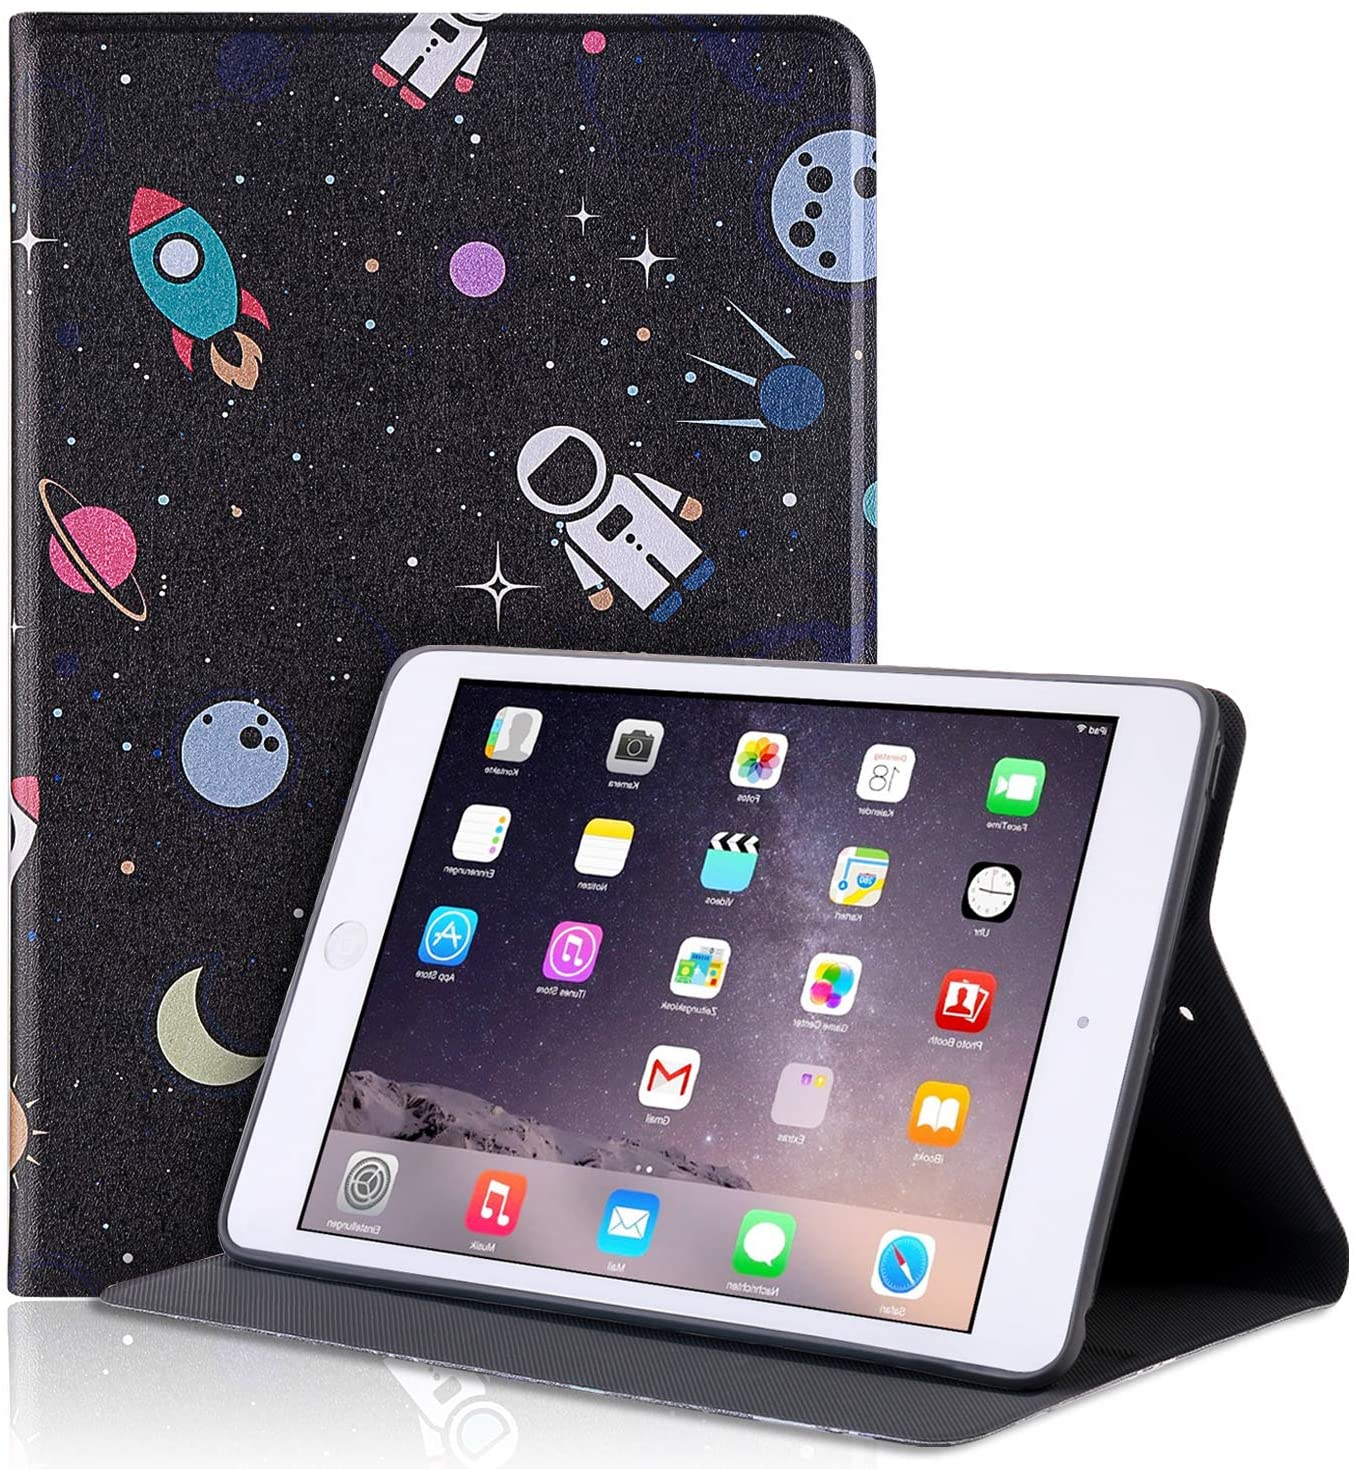 PBRO for New iPad Mini 5th Gen Case 2019 7.9-inch,Cute Astronaut Leather Design Trifold Case Ultra Slim ase with Sleep/Wake Cover for iPad Mini 5 Case 2019,Space/Black